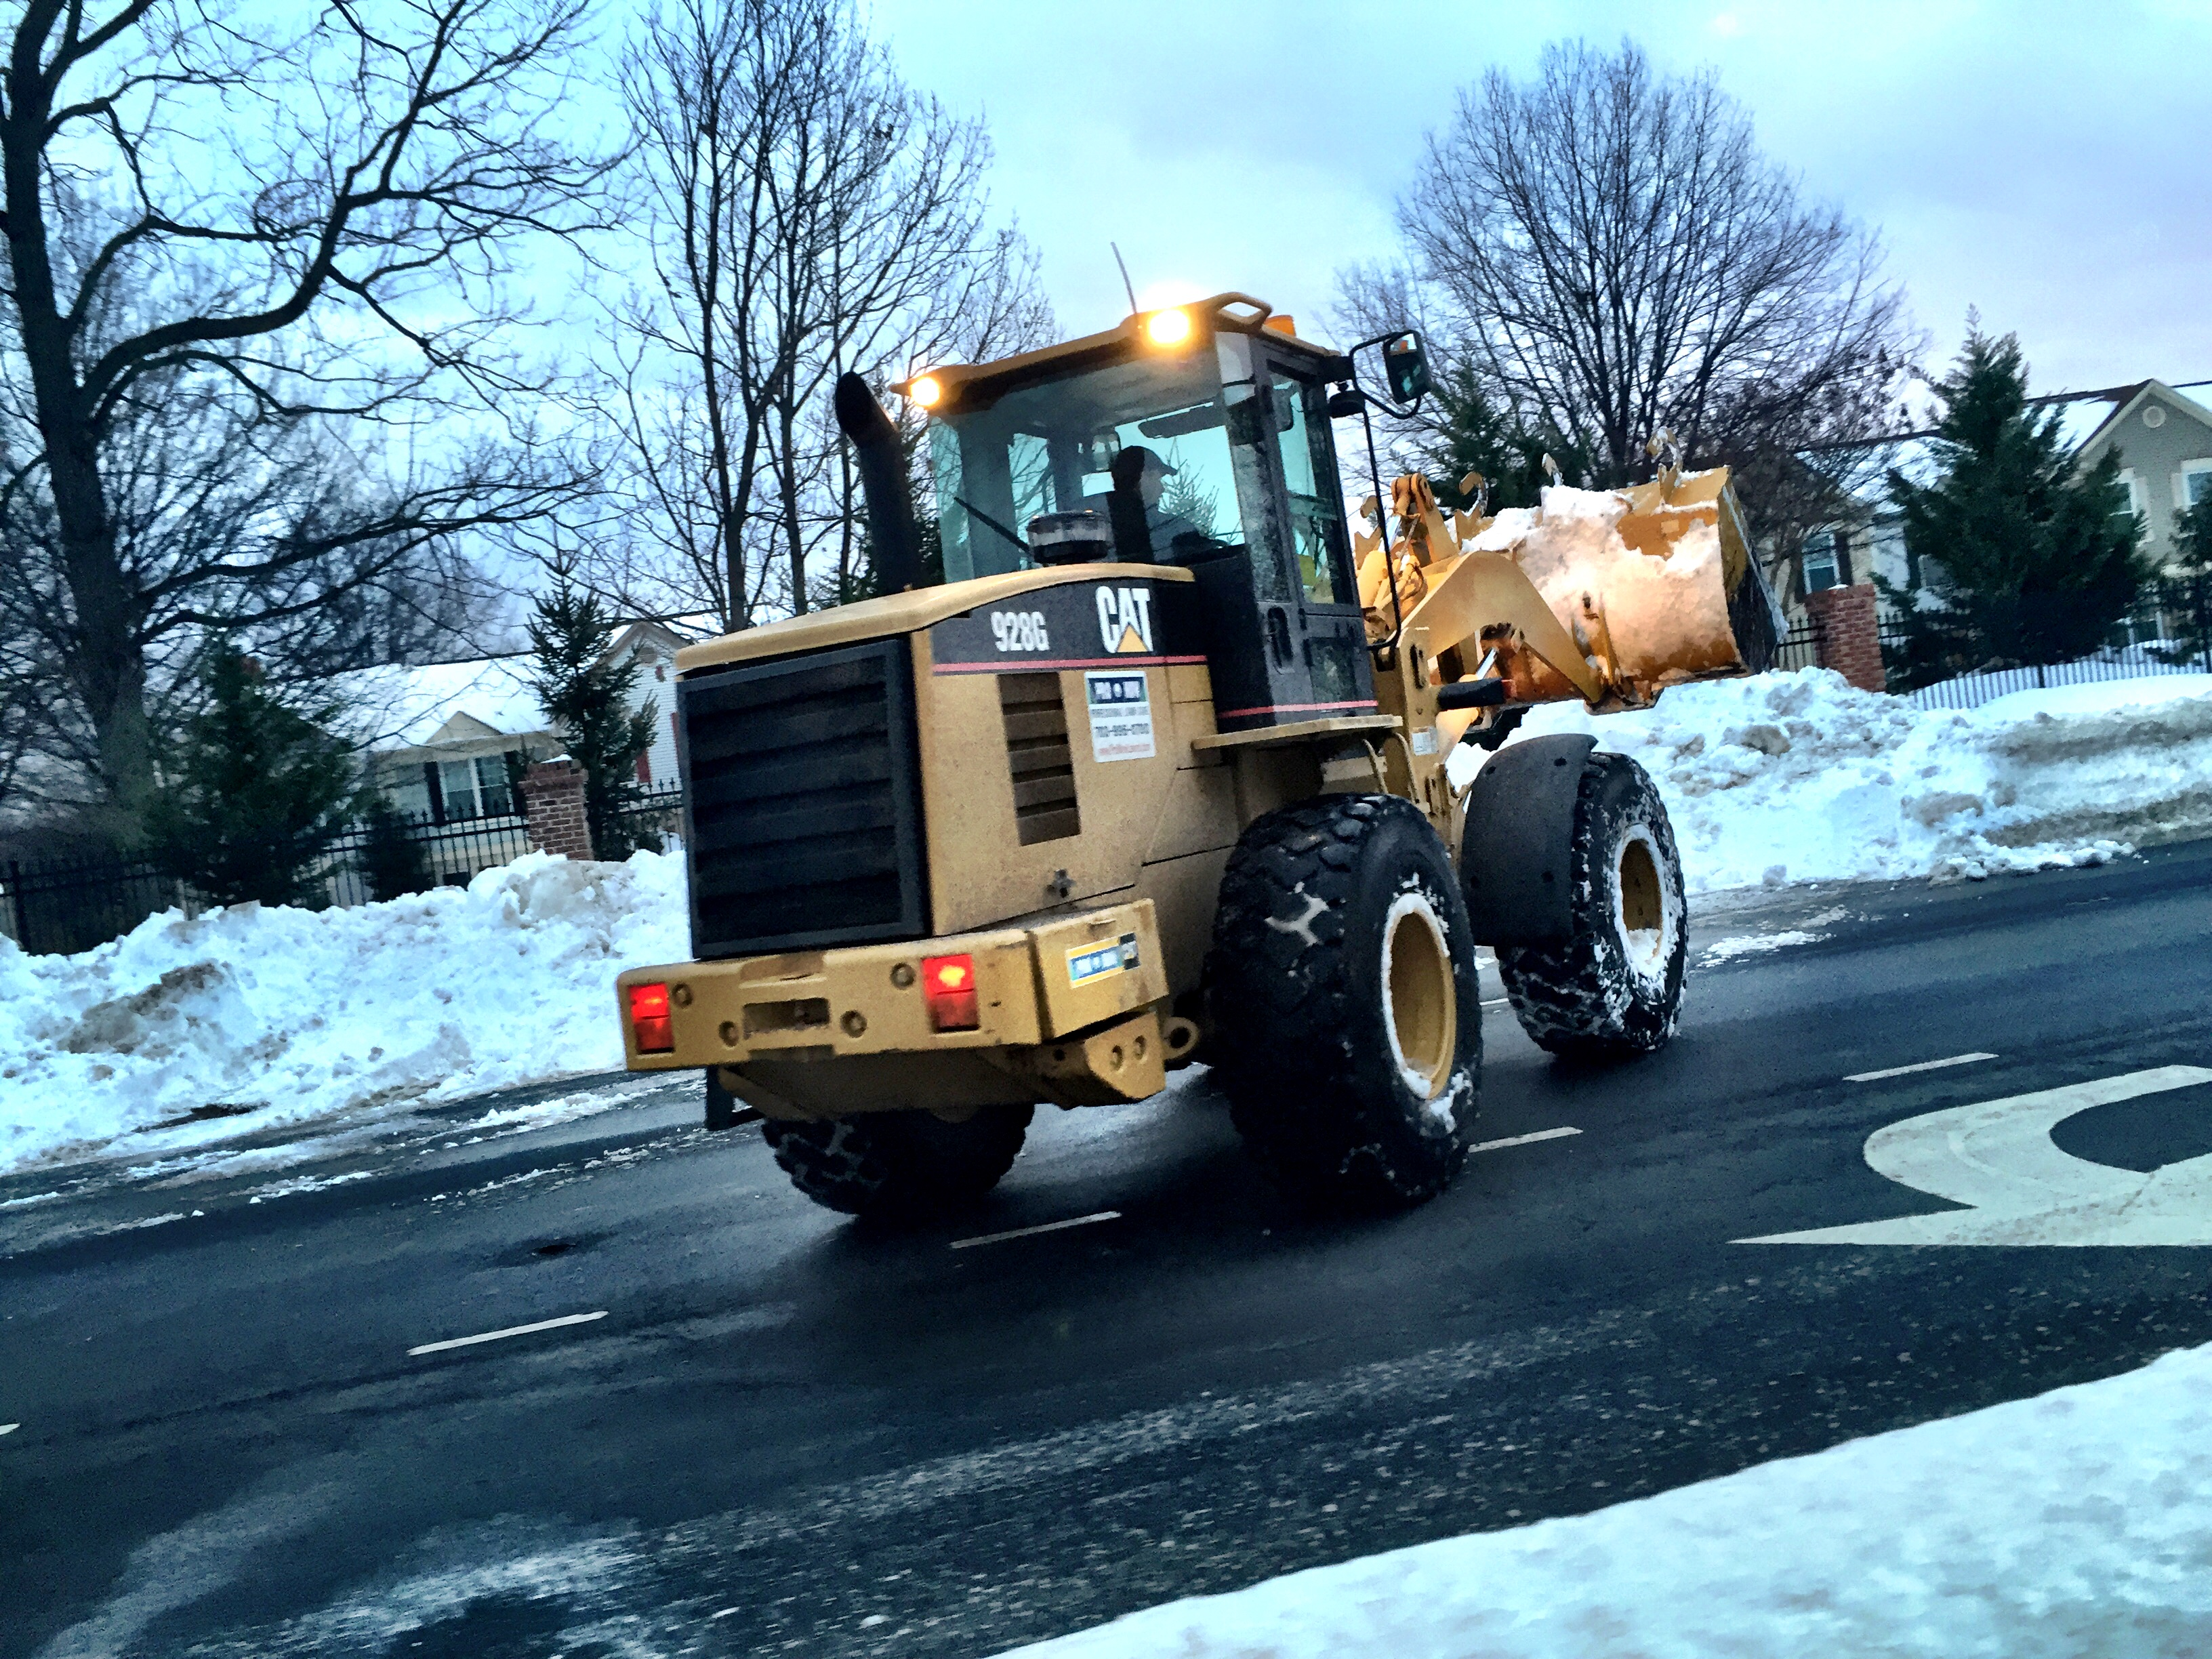 More snow days could mean calendar change for Fairfax schools